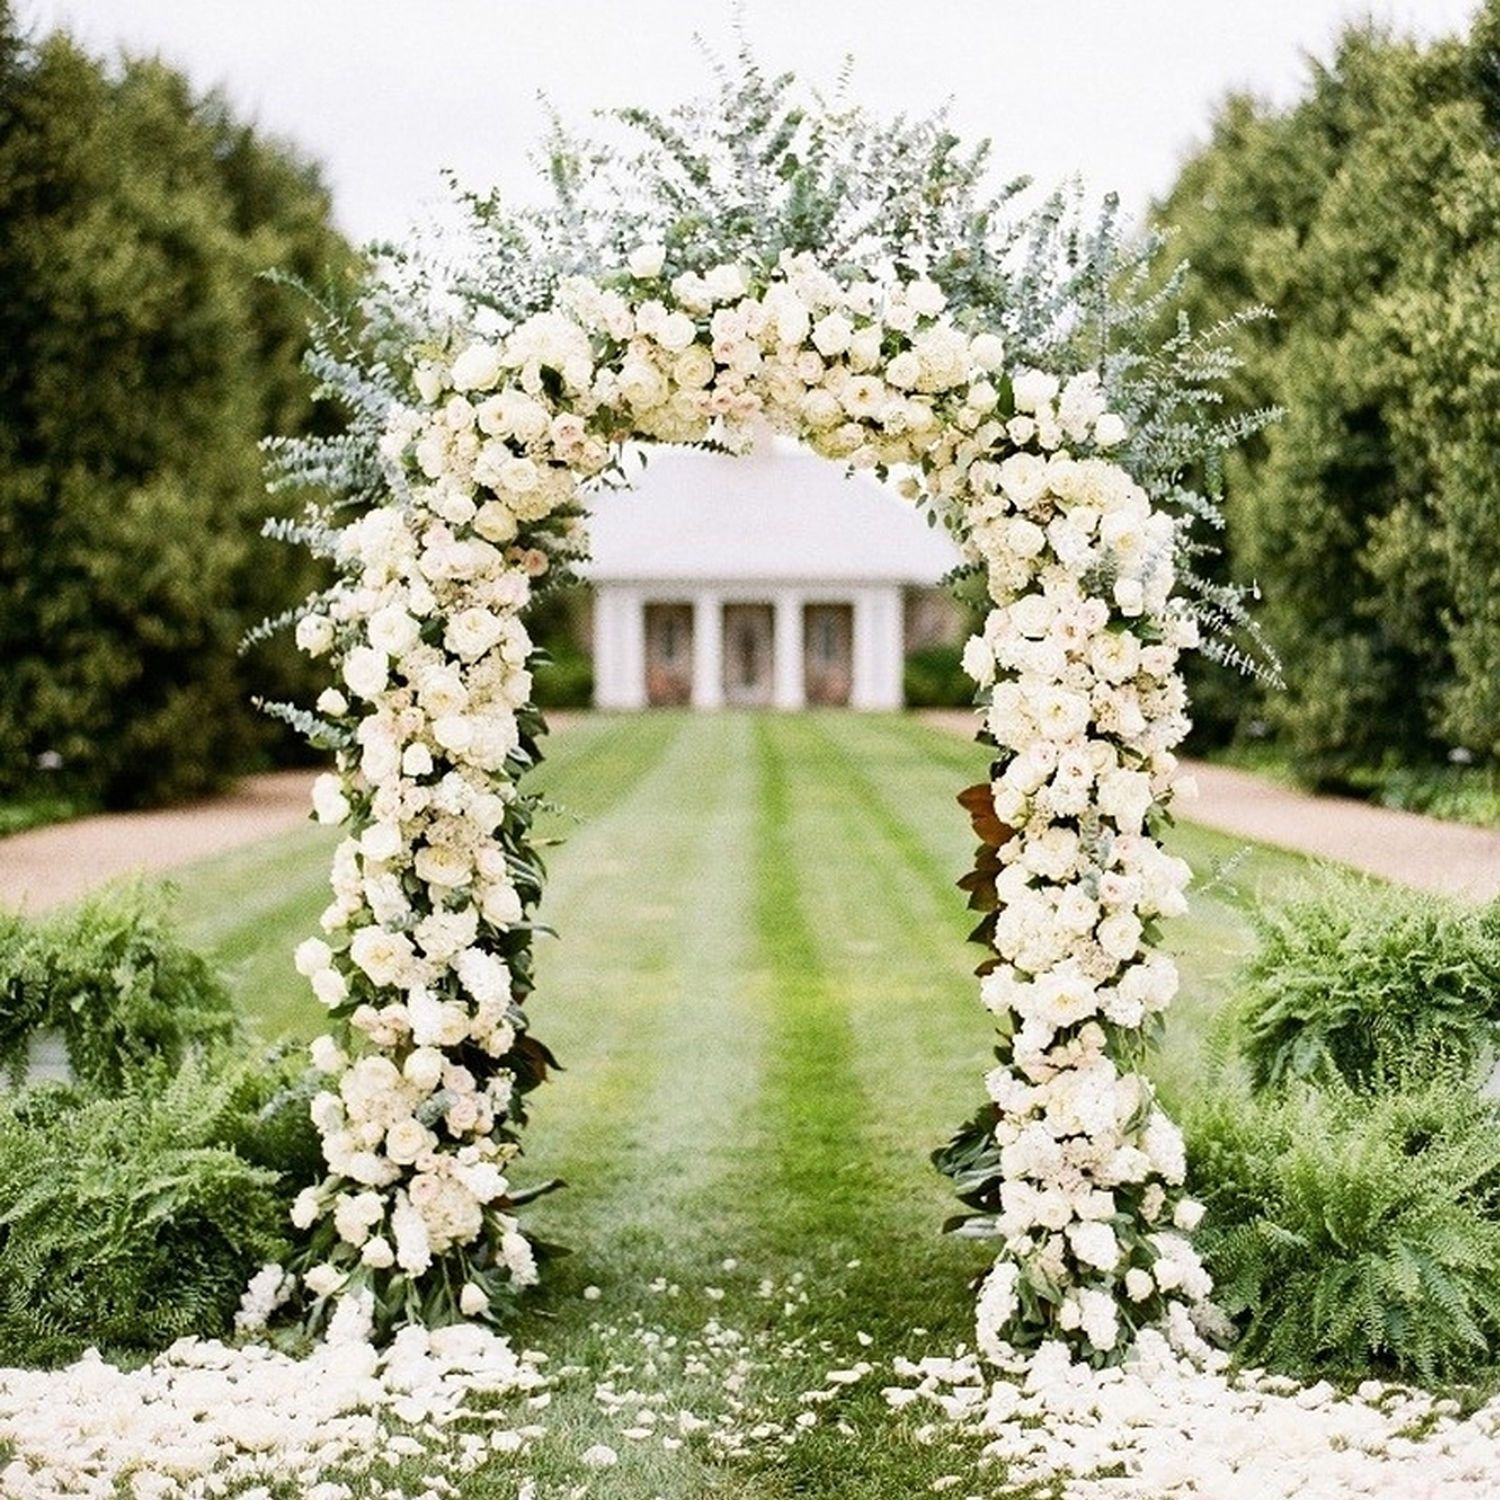 Cheap flower decoration for cake buy quality decorative flower cheap flower decoration for cake buy quality decorative flower lights directly from china flower stand for wedding decoration suppliers white metal junglespirit Images